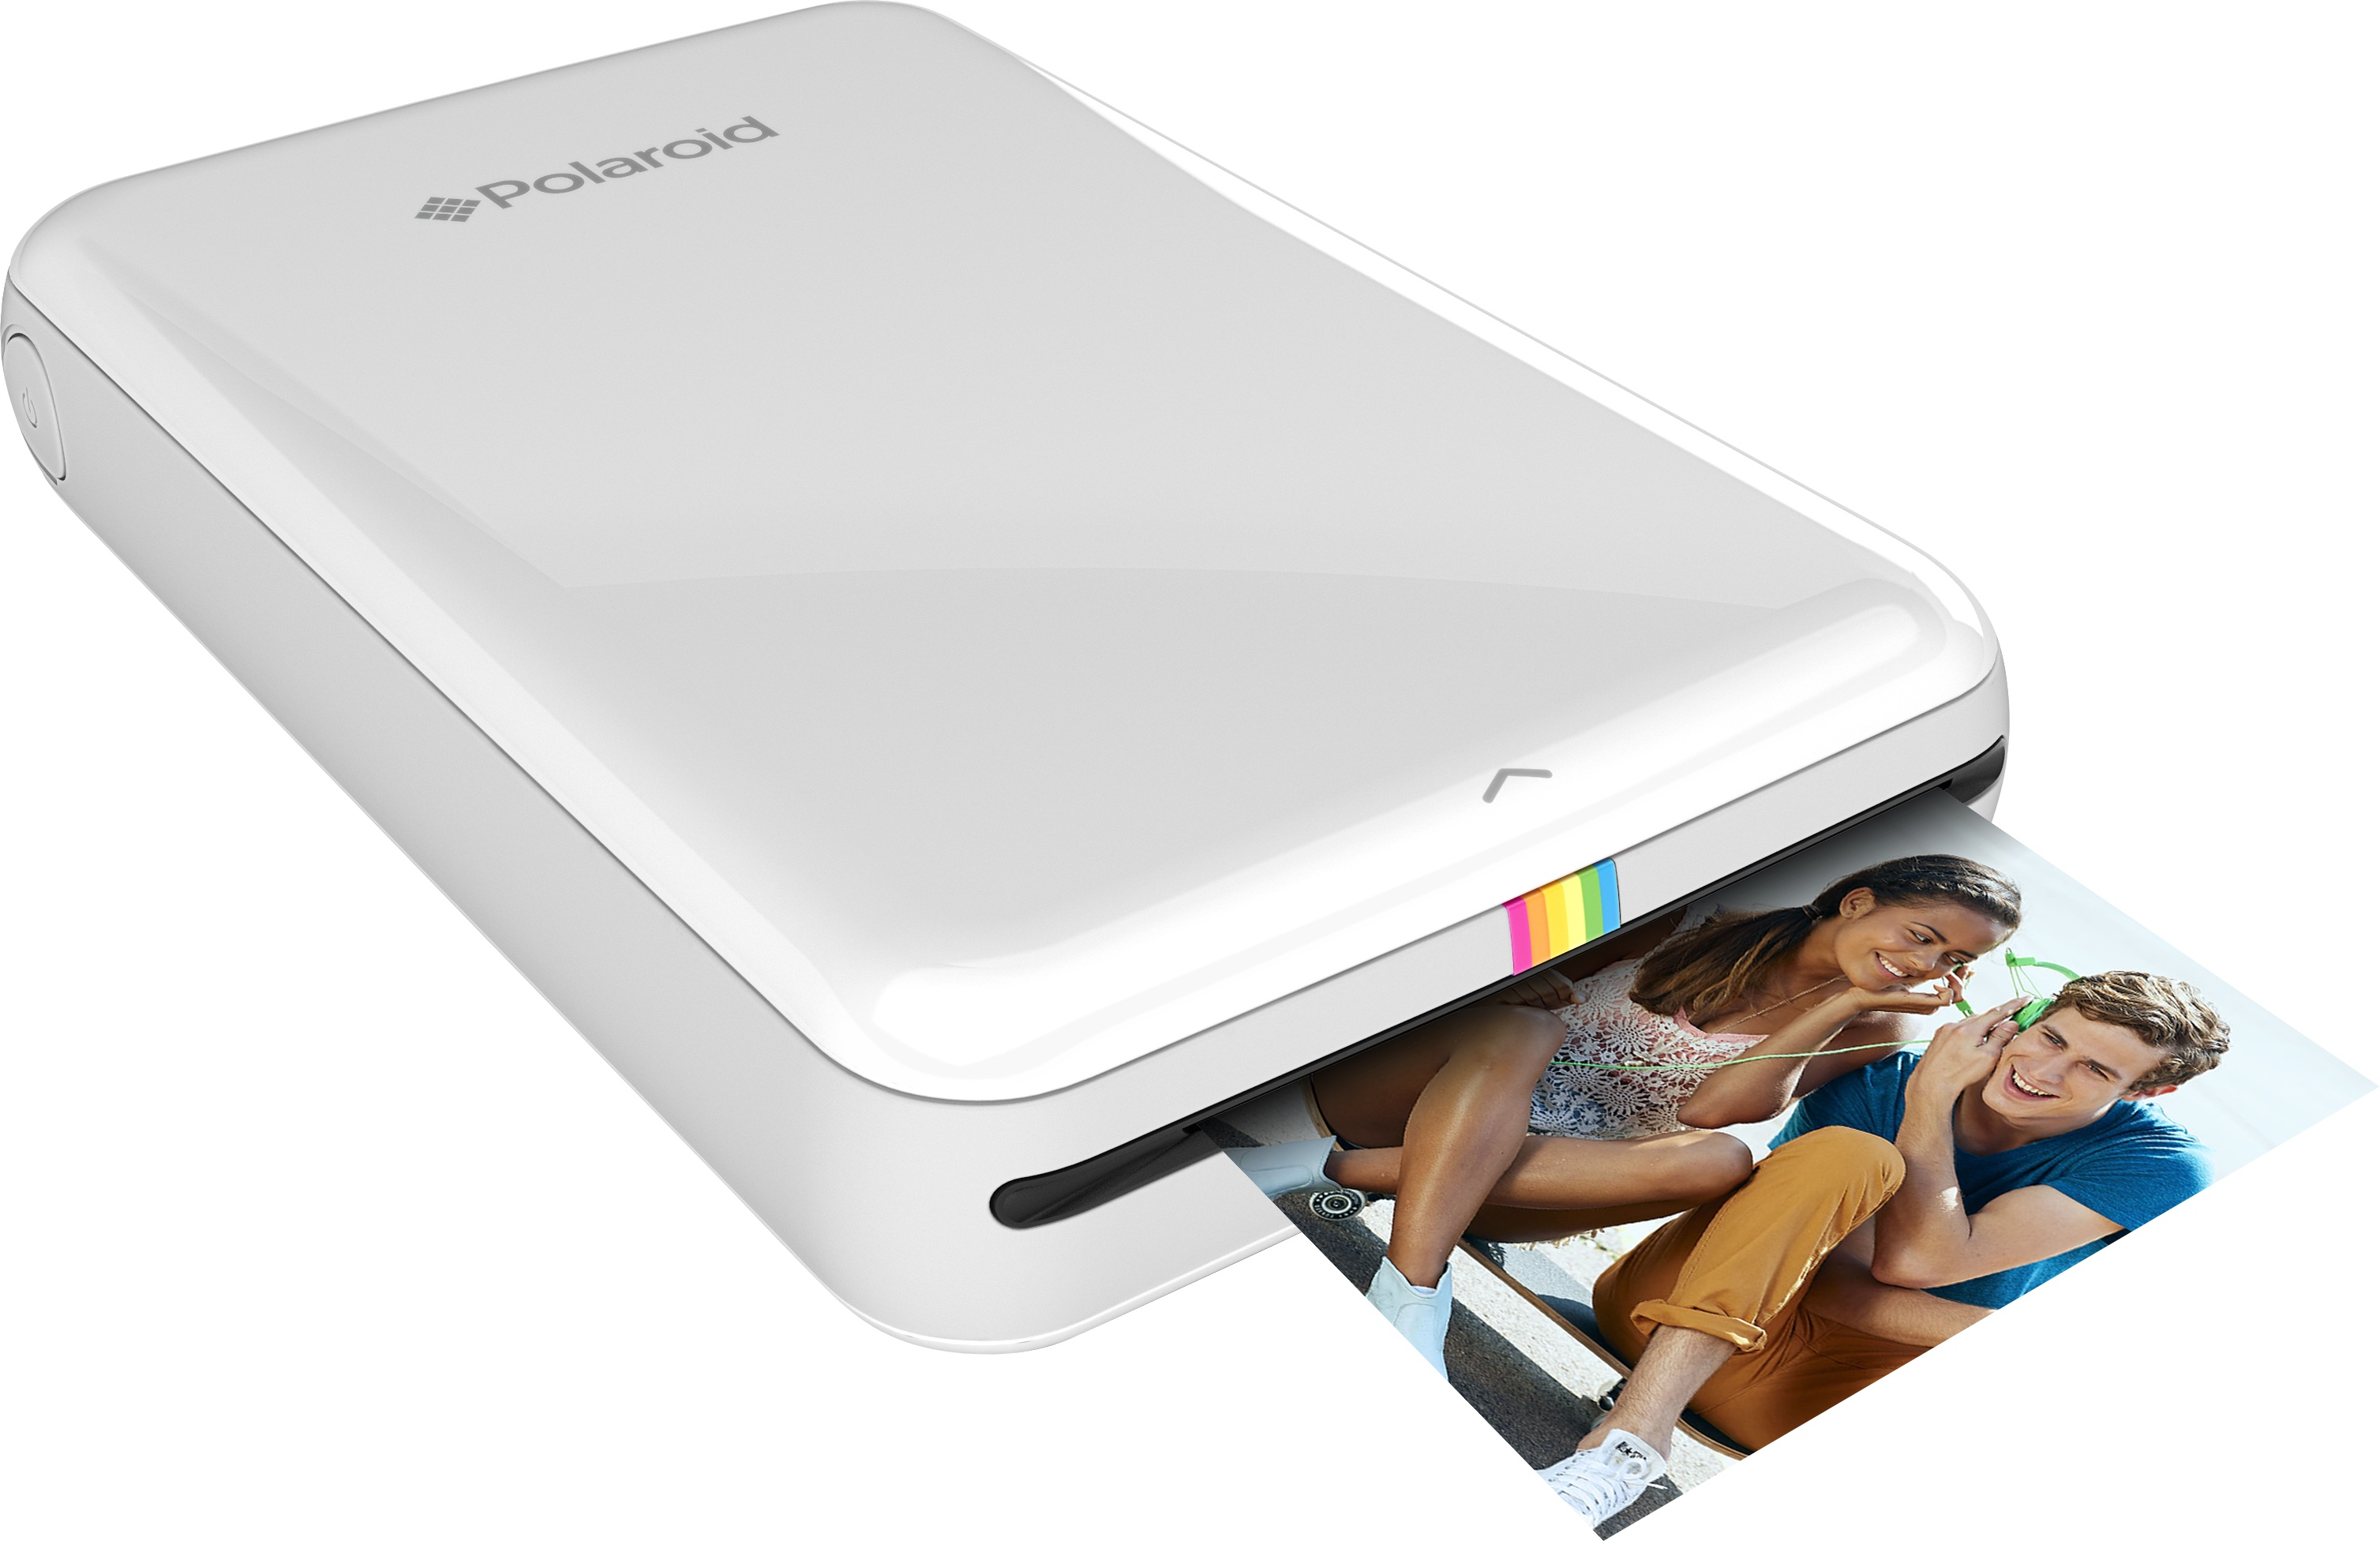 Polaroid Zip Mobile Printer image 001